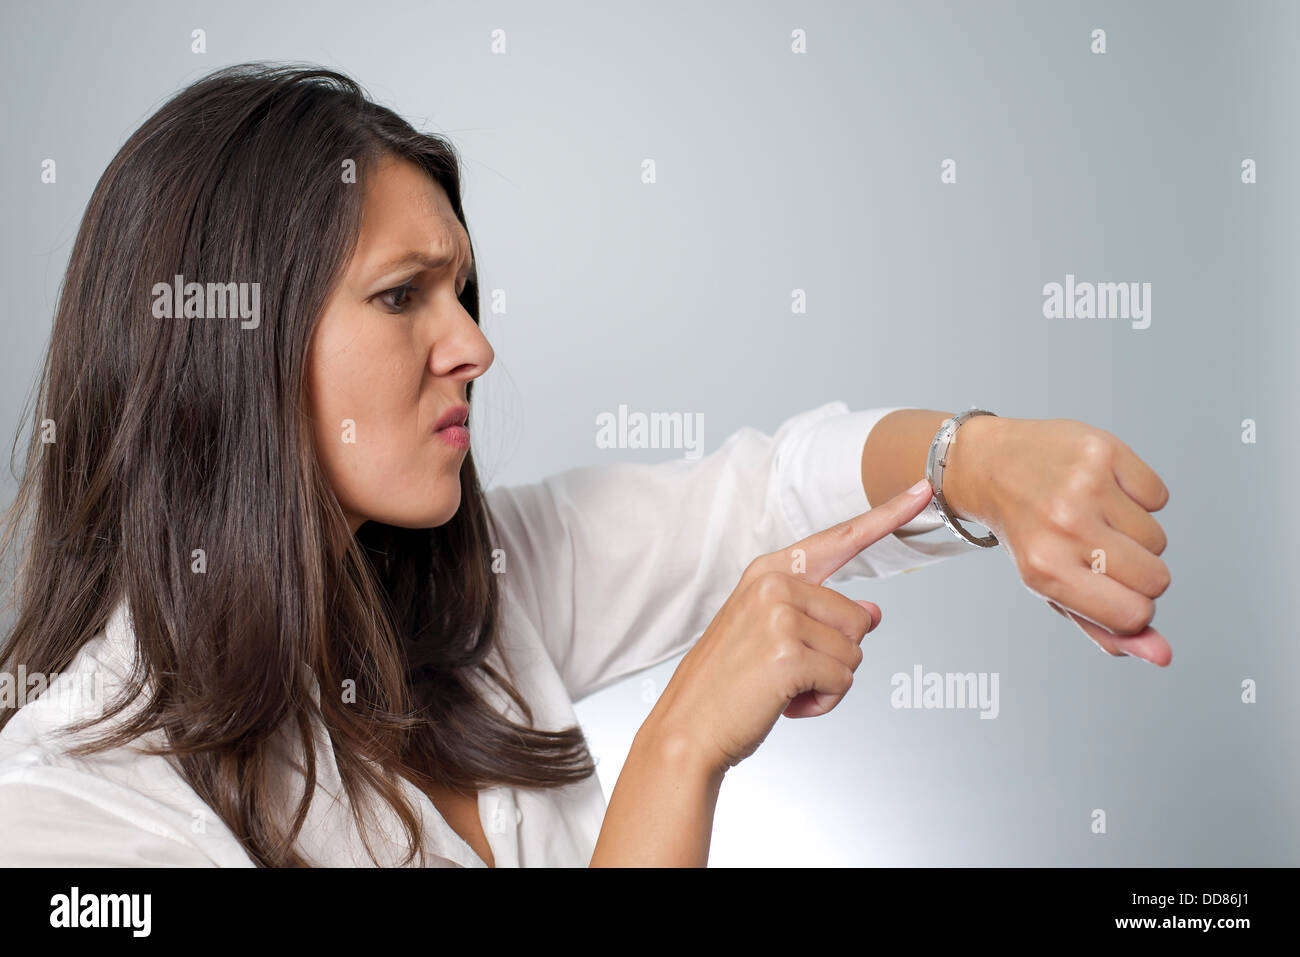 woman watch wrist show tapping late time finger - Stock Image